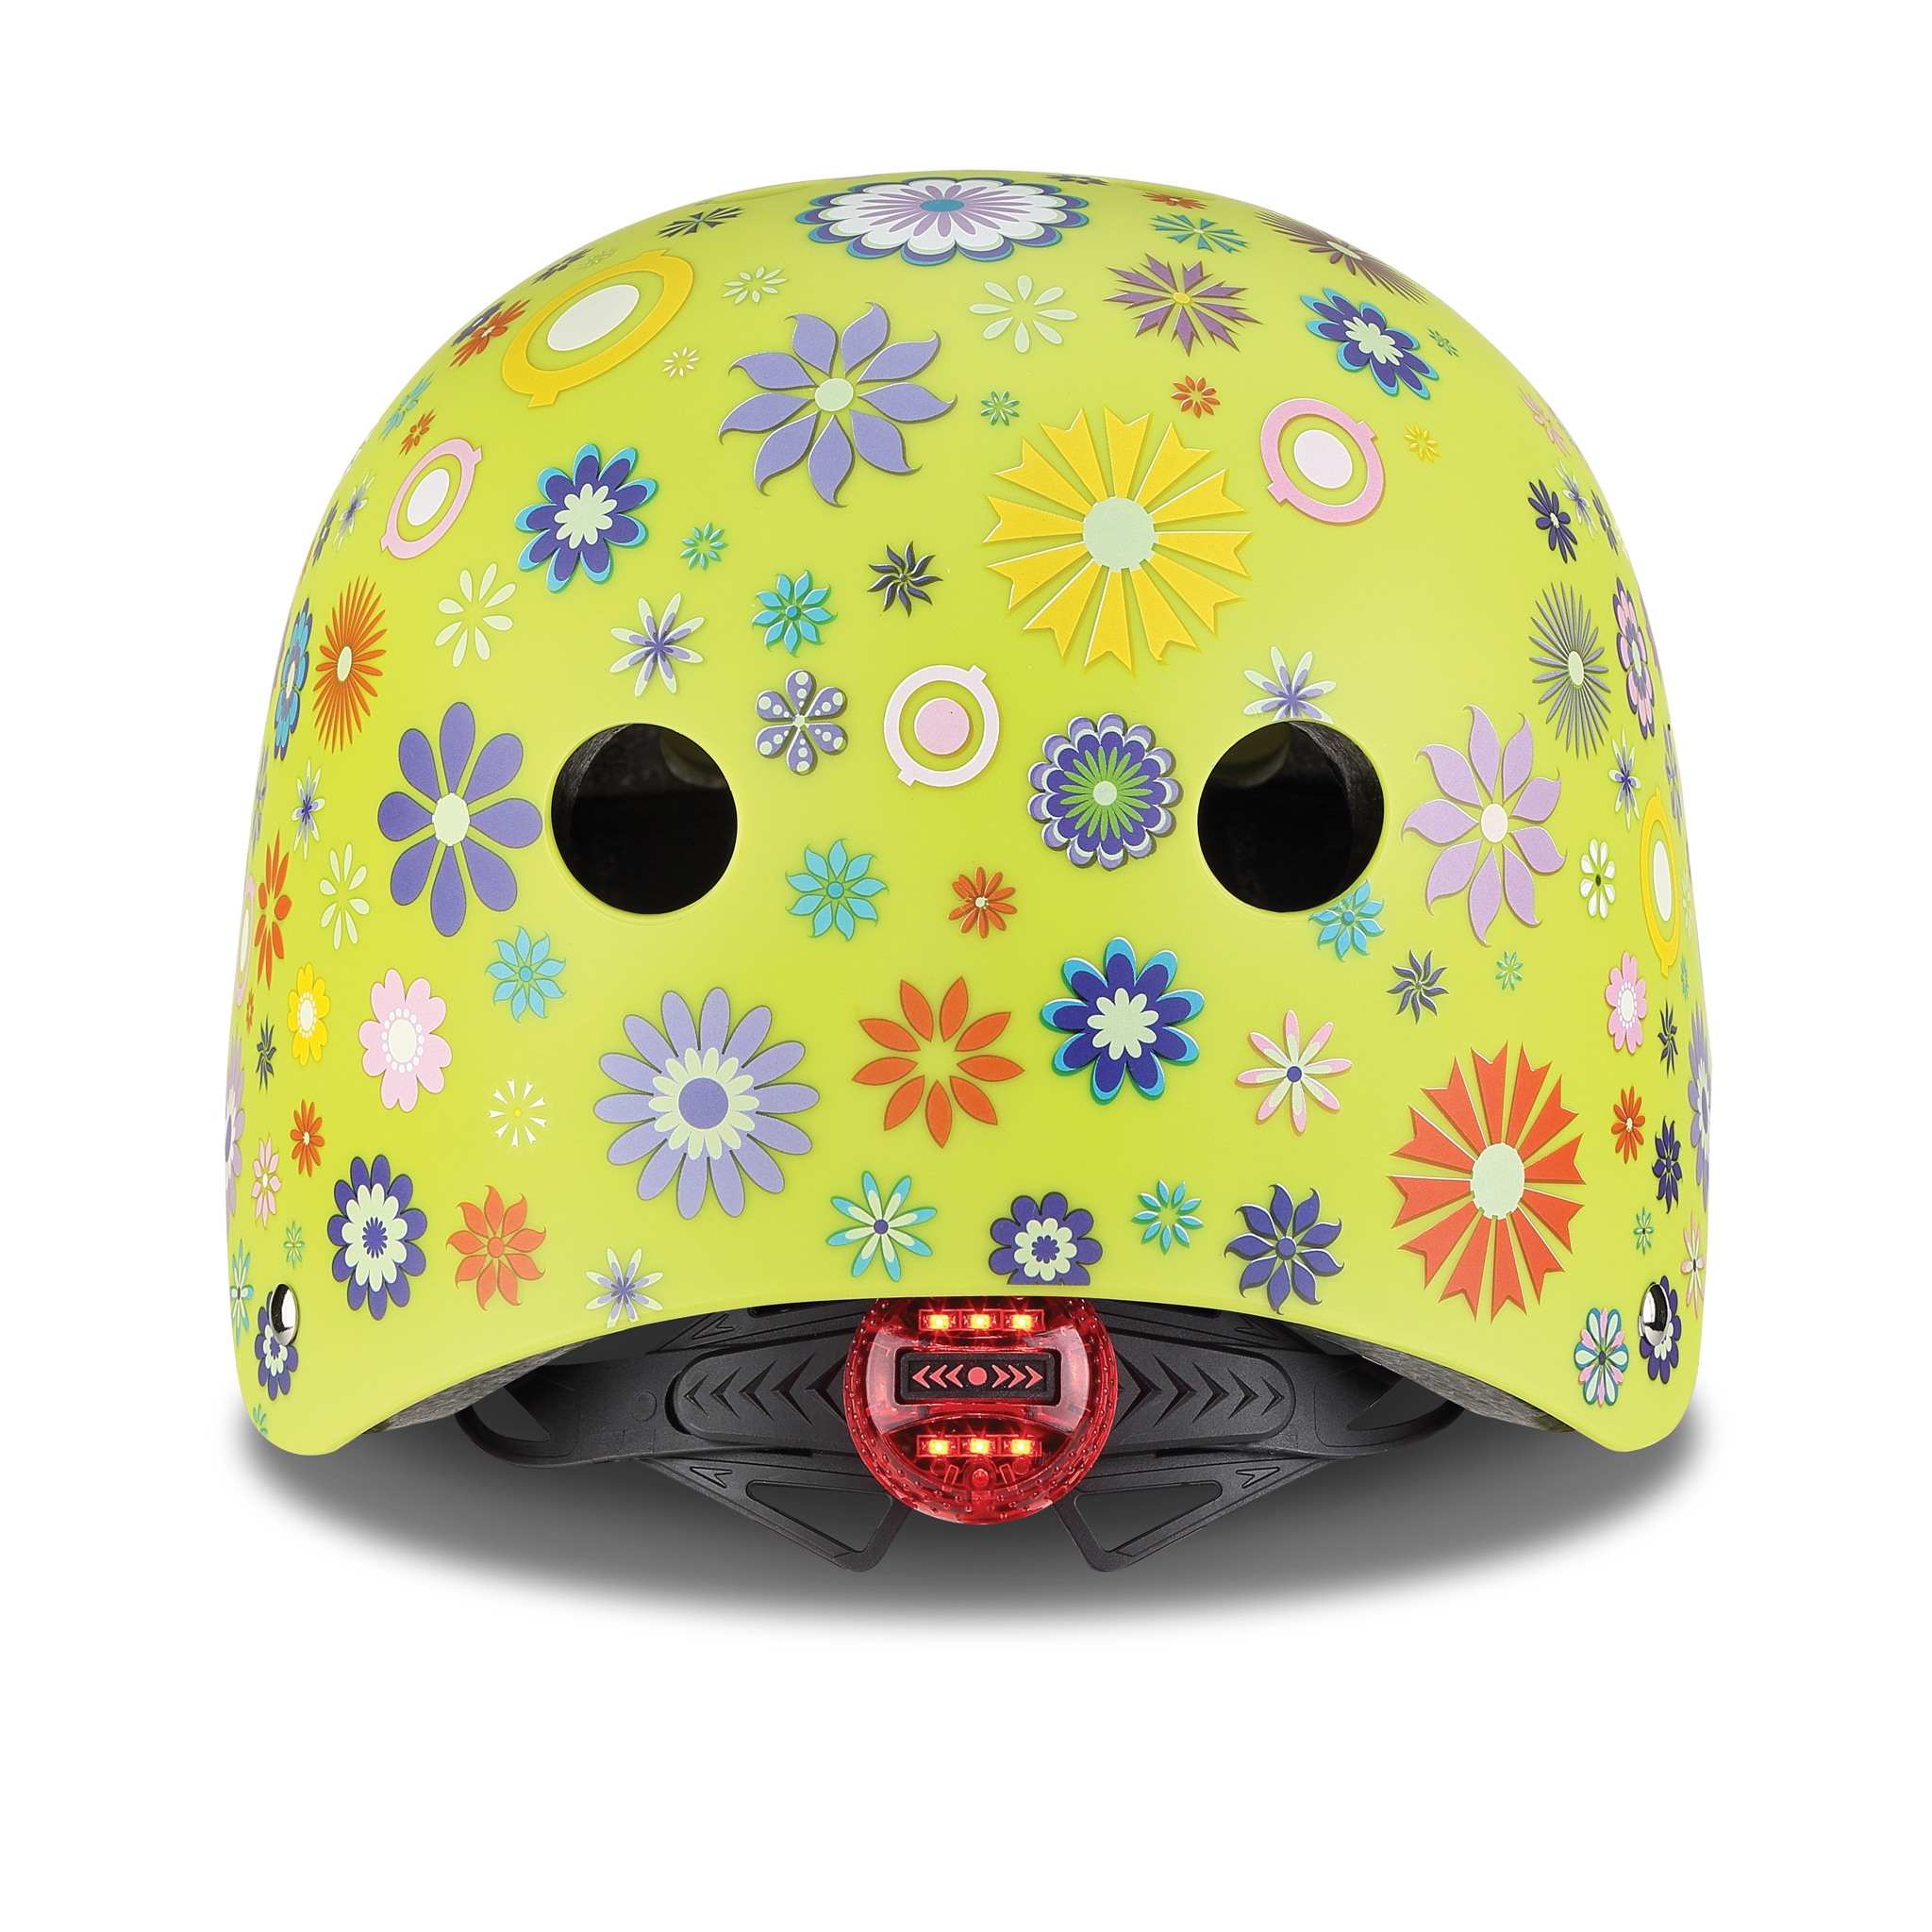 ELITE-helmets-scooter-helmets-for-kids-with-LED-lights-safe-helmet-for-kids-lime-green